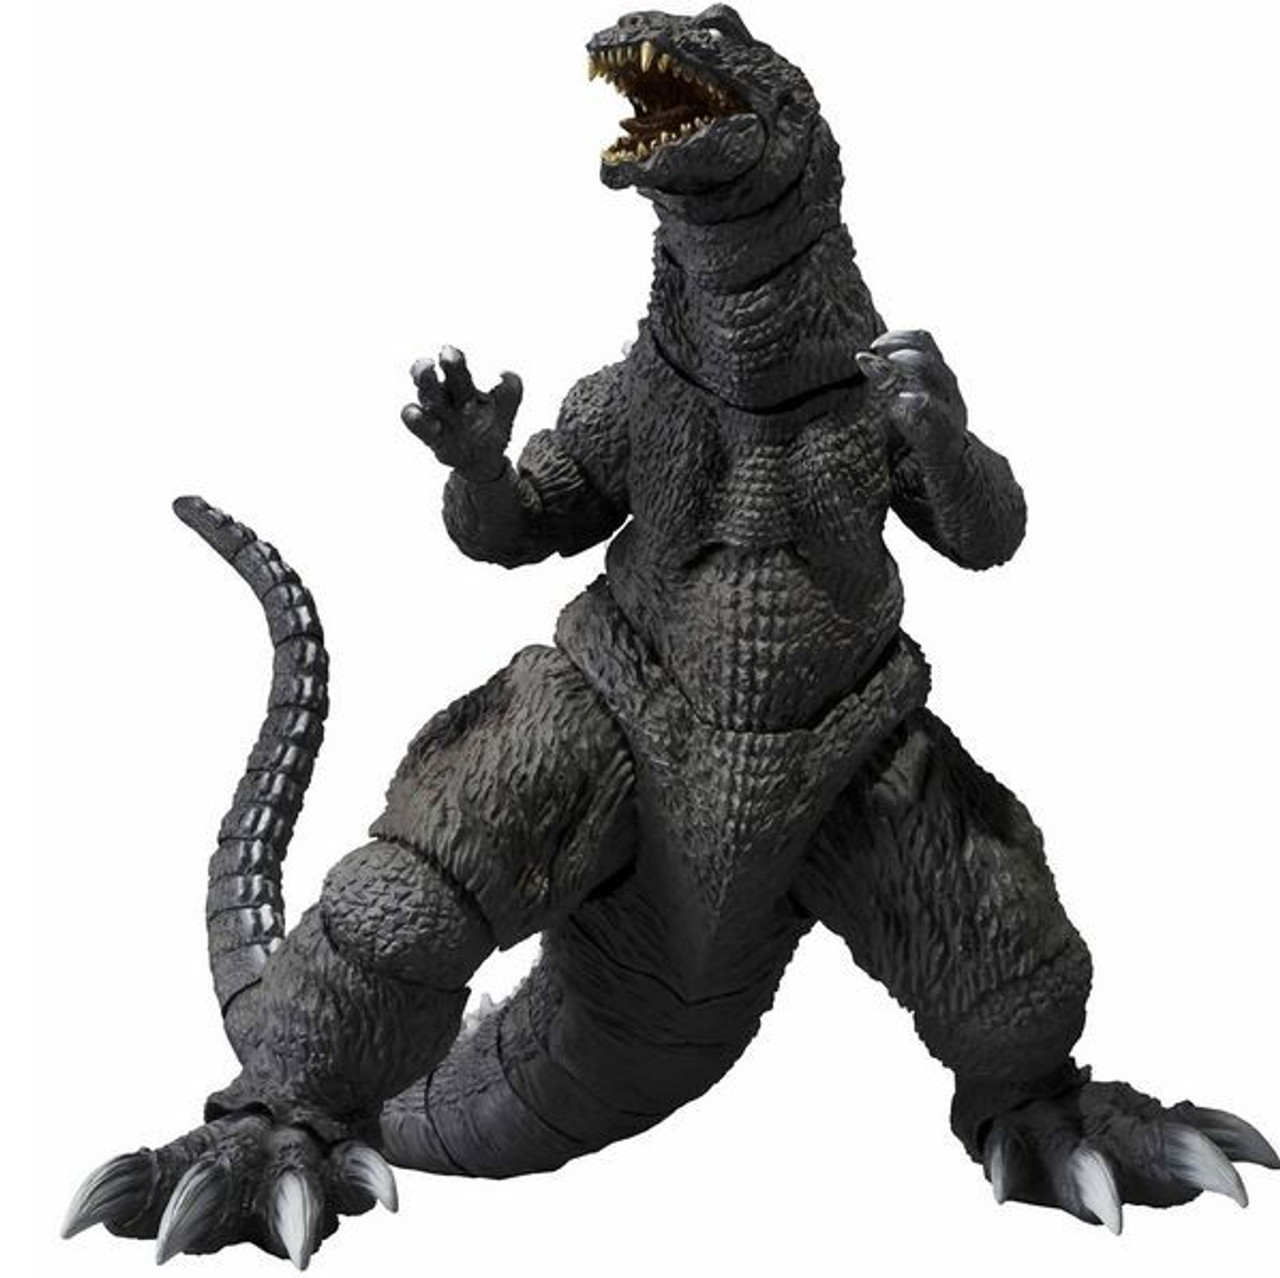 S.H. Monsterarts 2001 Godzilla Exclusive Action Figure [Tamashii Exclusive]